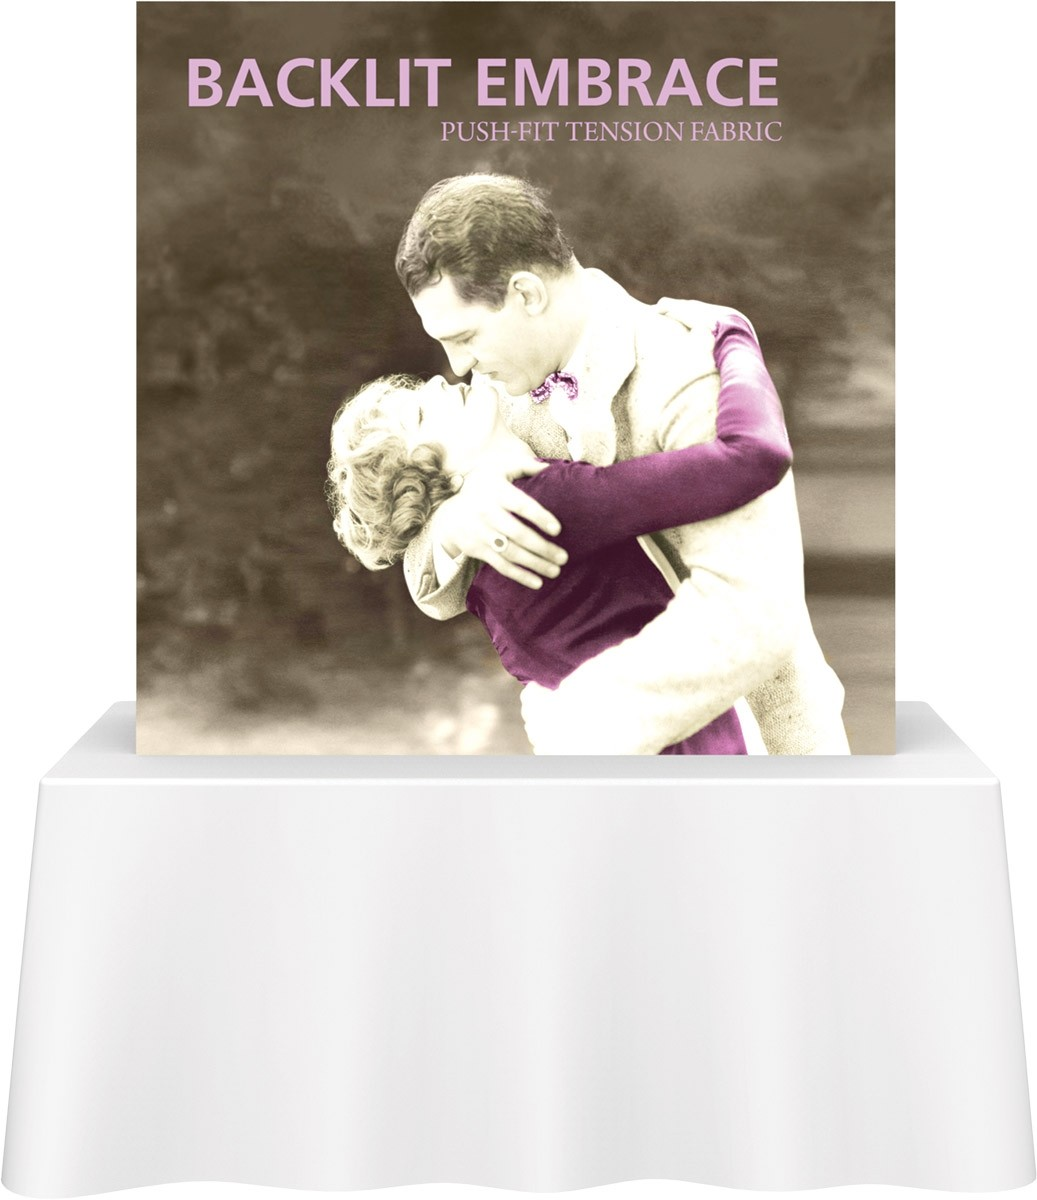 Embrace Backlit 2x2 Table Top Display